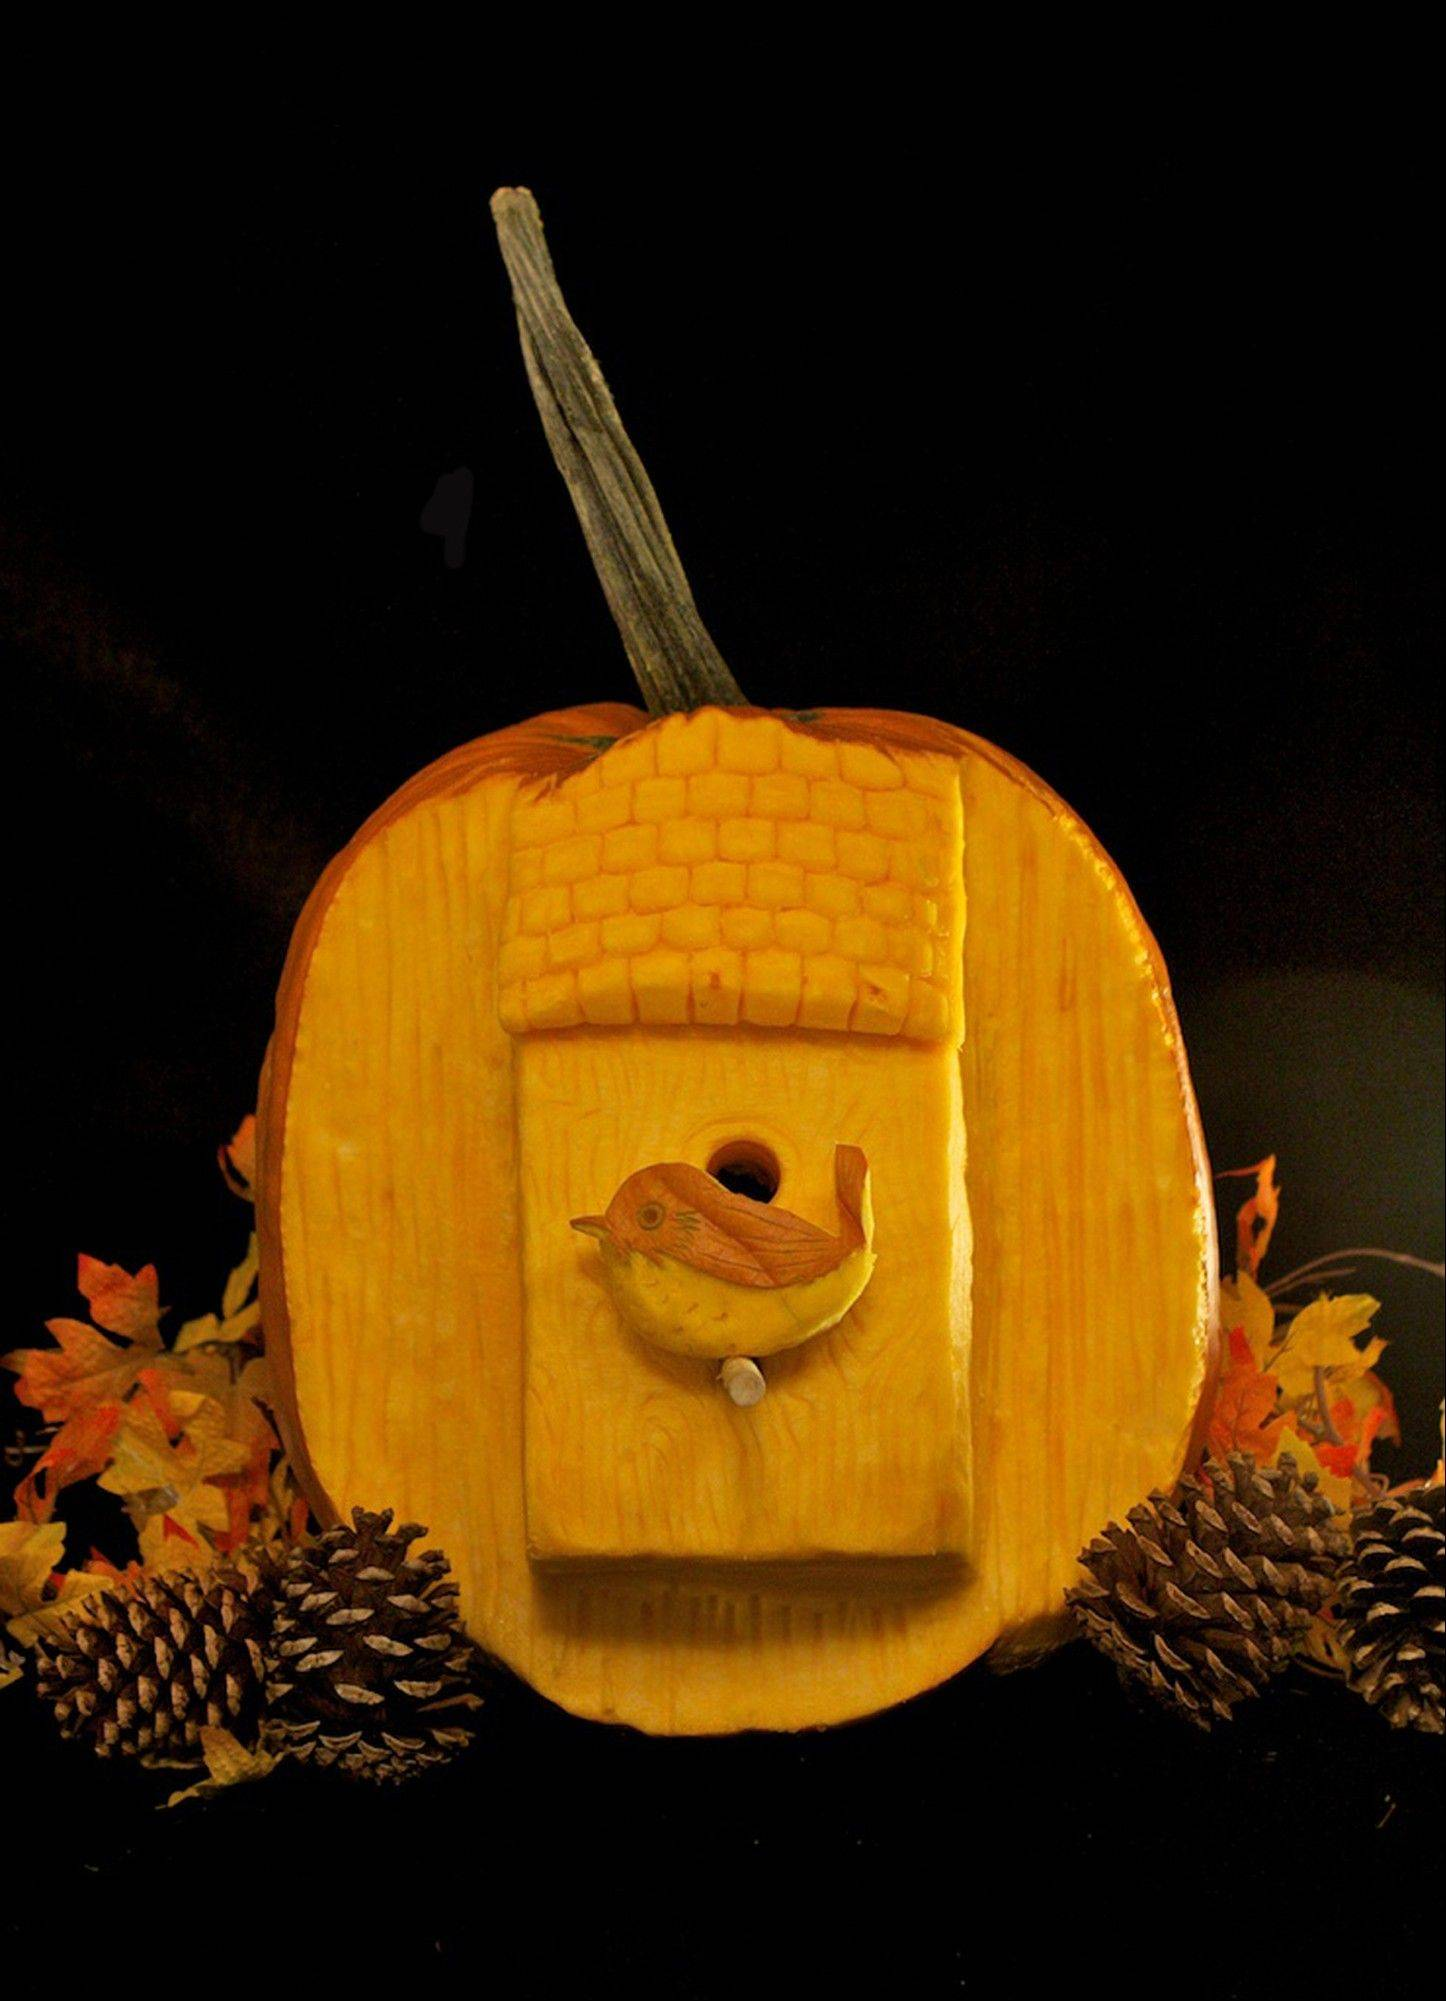 For at least three months each fall, pumpkin carvers Marc Evan and Chris Soria, of New York City, relinquish their illustrator occupations to carve fantastical pumpkins full-time to become the Maniac Pumpkin Carvers.